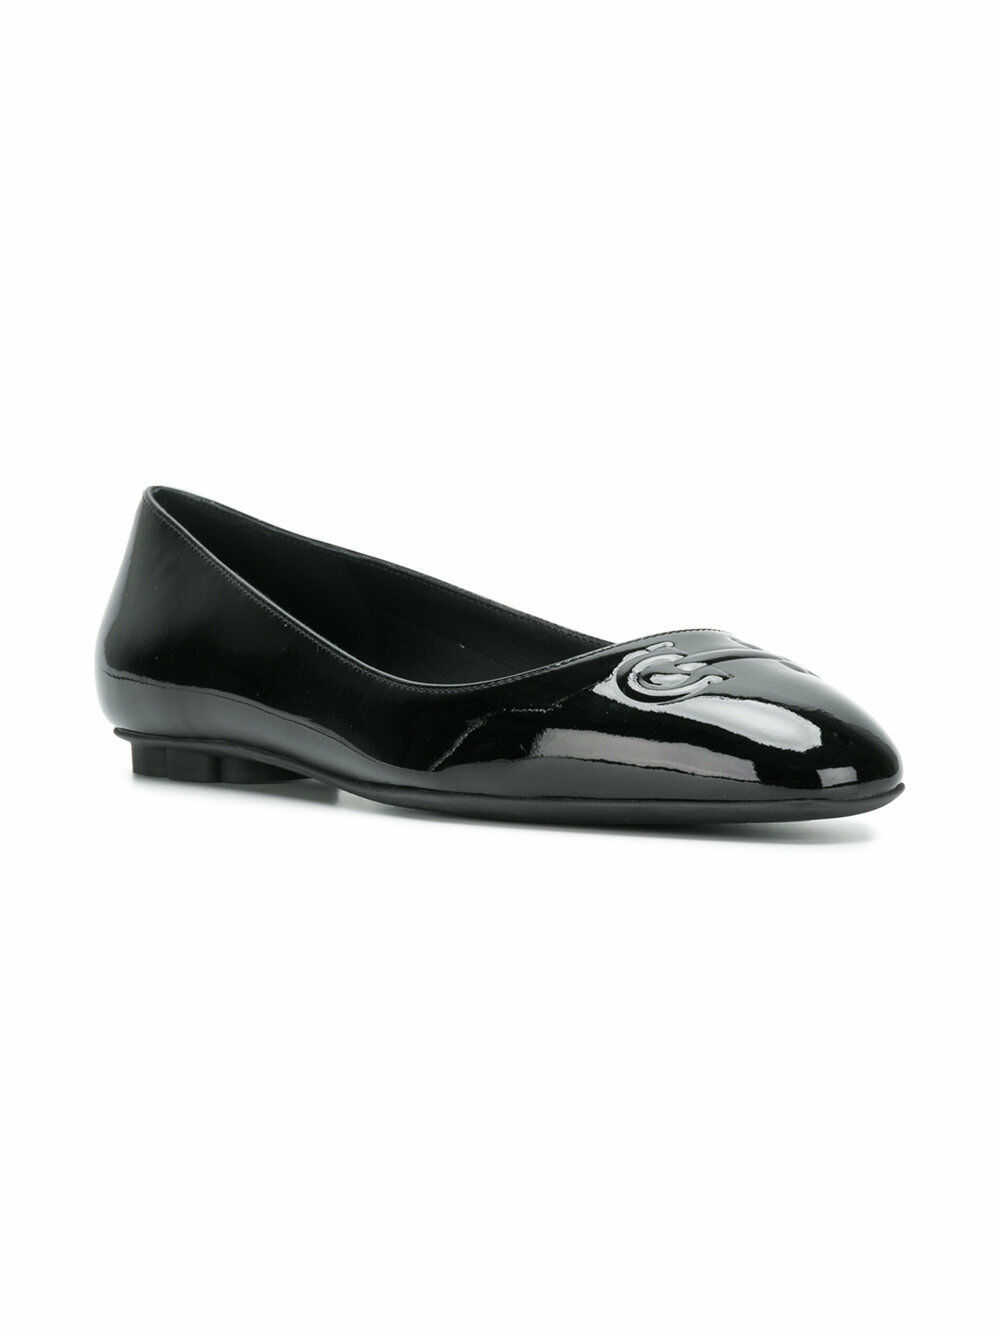 New in Box Neuf Neuf Neuf Salvatore Ferragamo Broni Noir Or Rouge Ballerines 6.5 7 8 8.5 9.5 efd62f